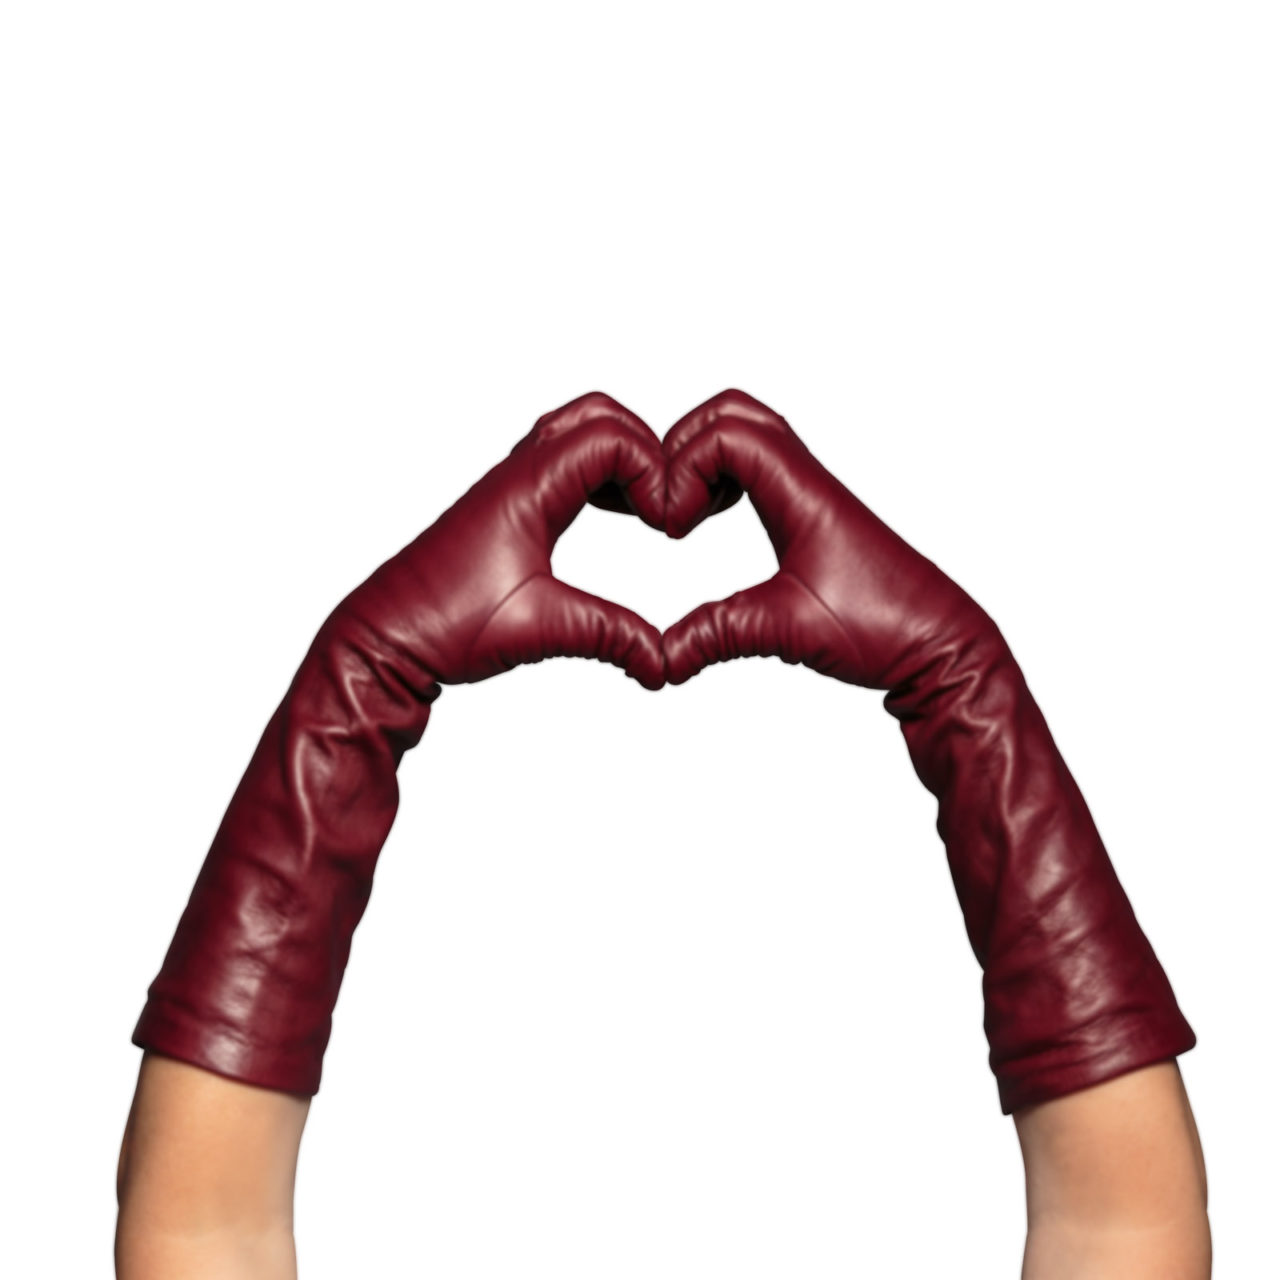 beau-gant-gloves-8-inch-long-dark-red-heart